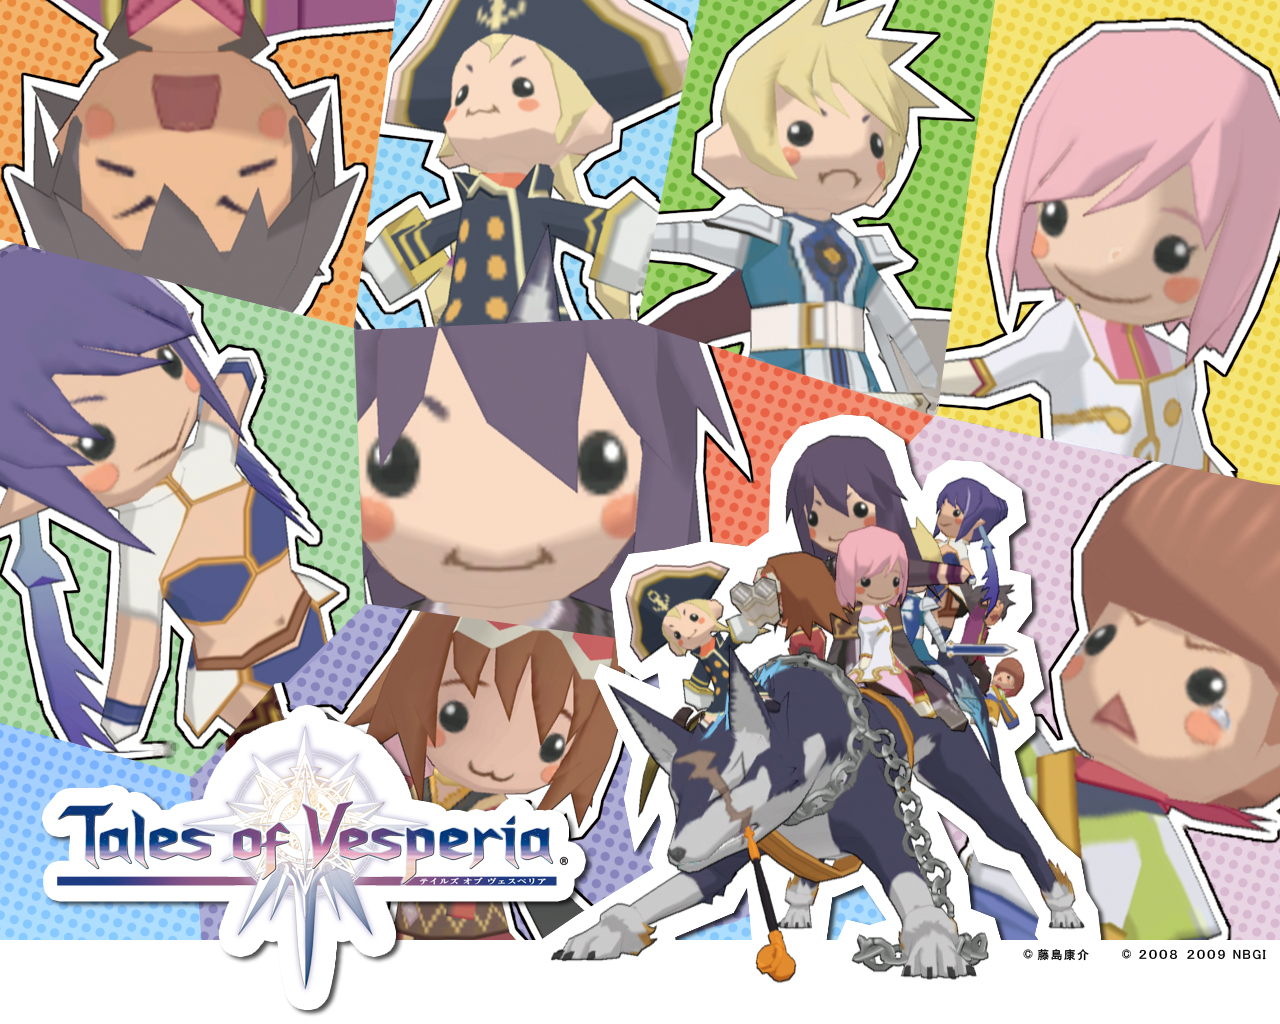 Tales Of Vesperia Wallpaper 131659 Zerochan Anime Image Board